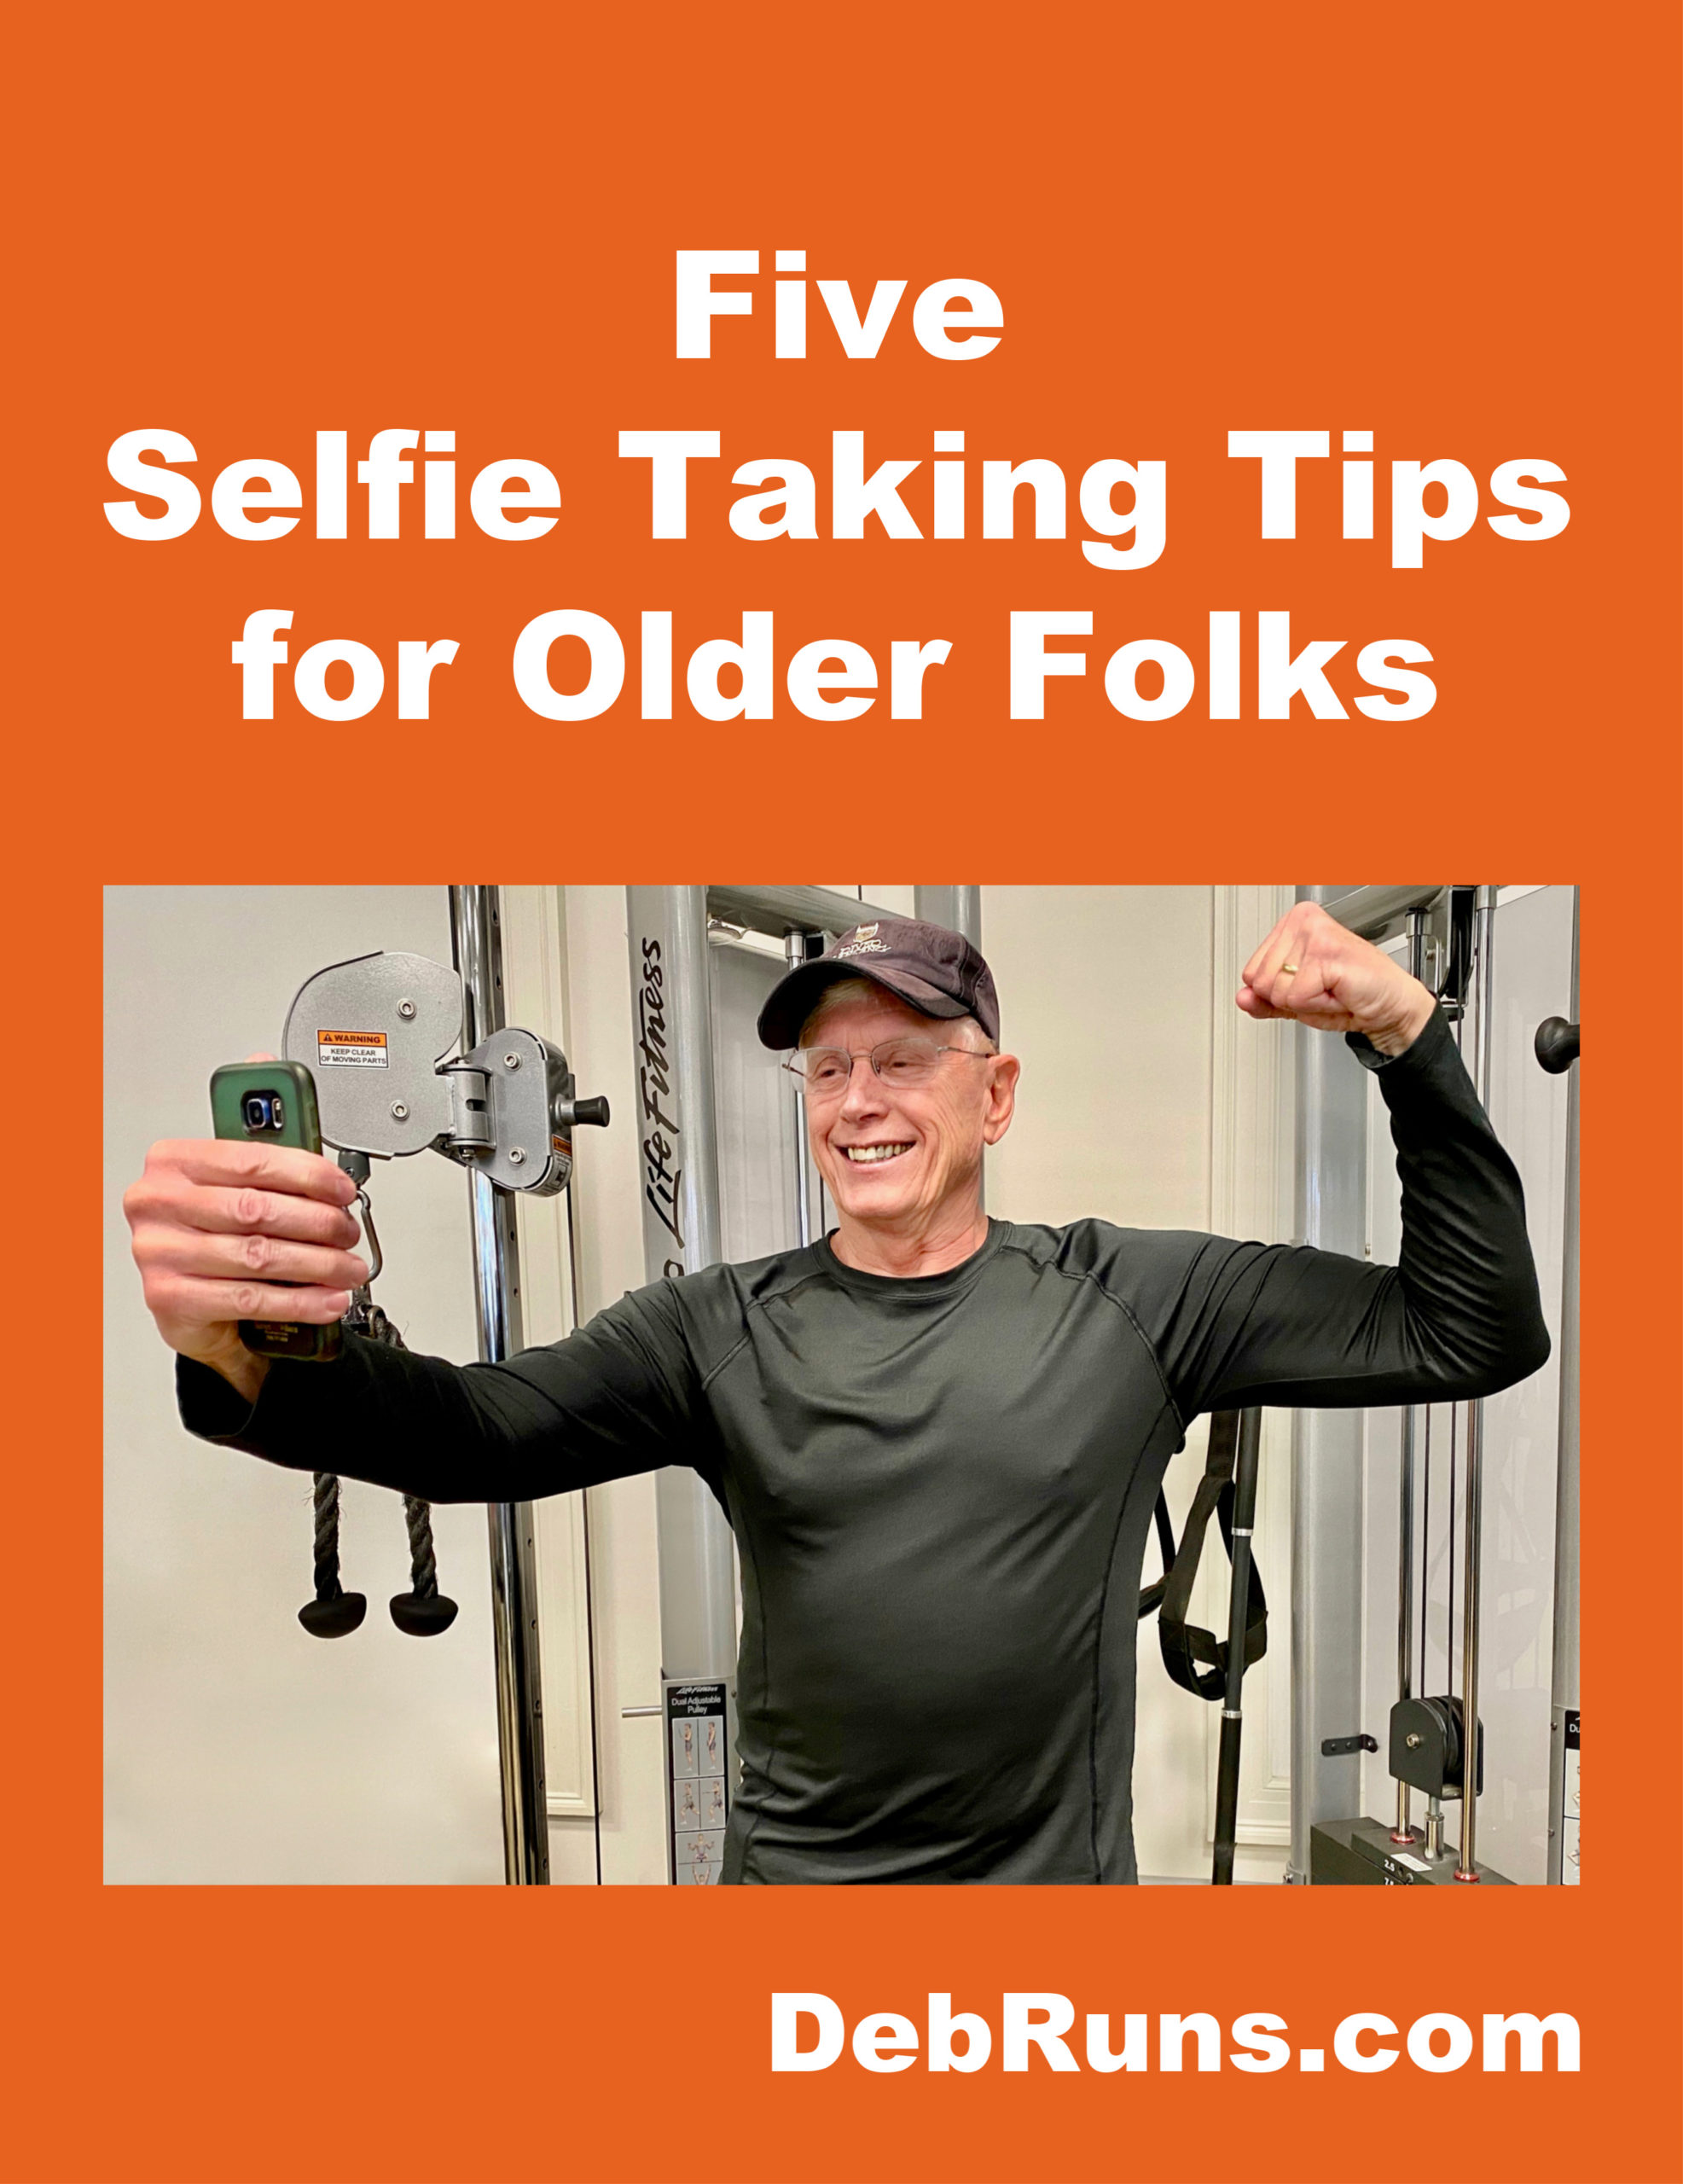 Five Selfie Taking Tips for Older Folks